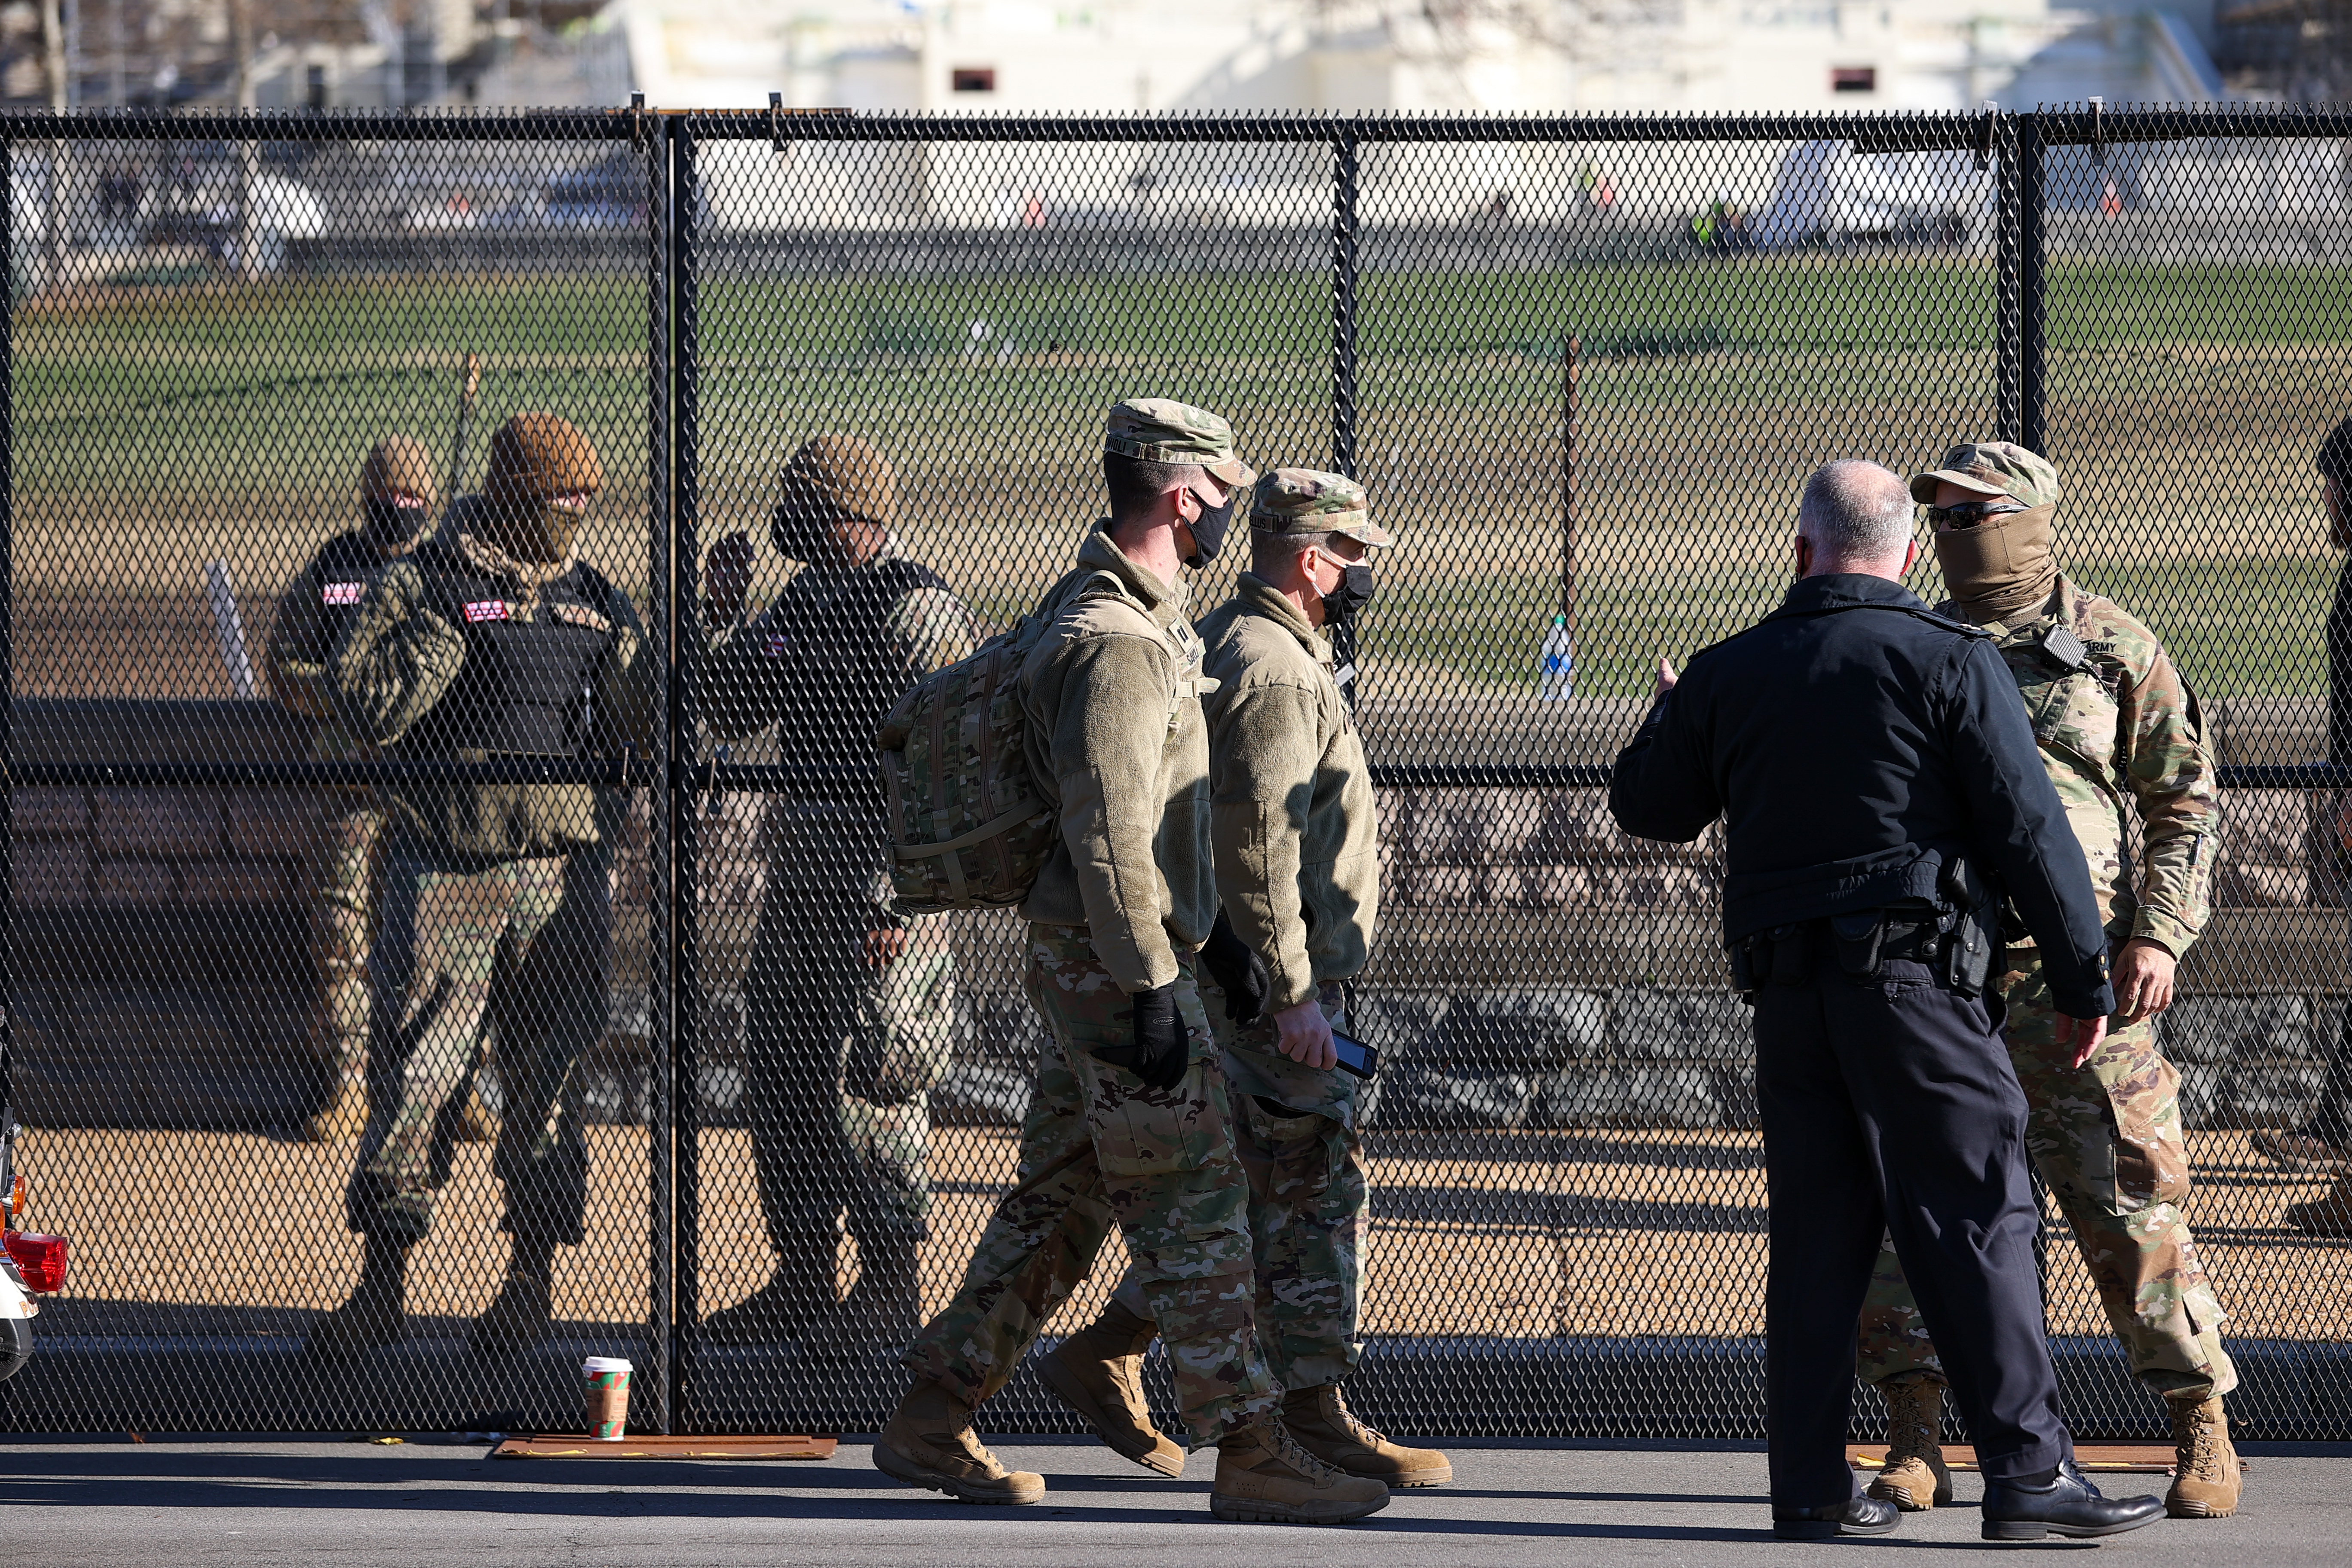 WASHINGTON D.C., USA - JANUARY 07: National Guards are seen as The U.S Capitol building's surround was fenced after massive protest following Trump supporters entered the building in Washington D.C., United States on January 07, 2020. (Photo by Tayfun Coskun/Anadolu Agency via Getty Images)